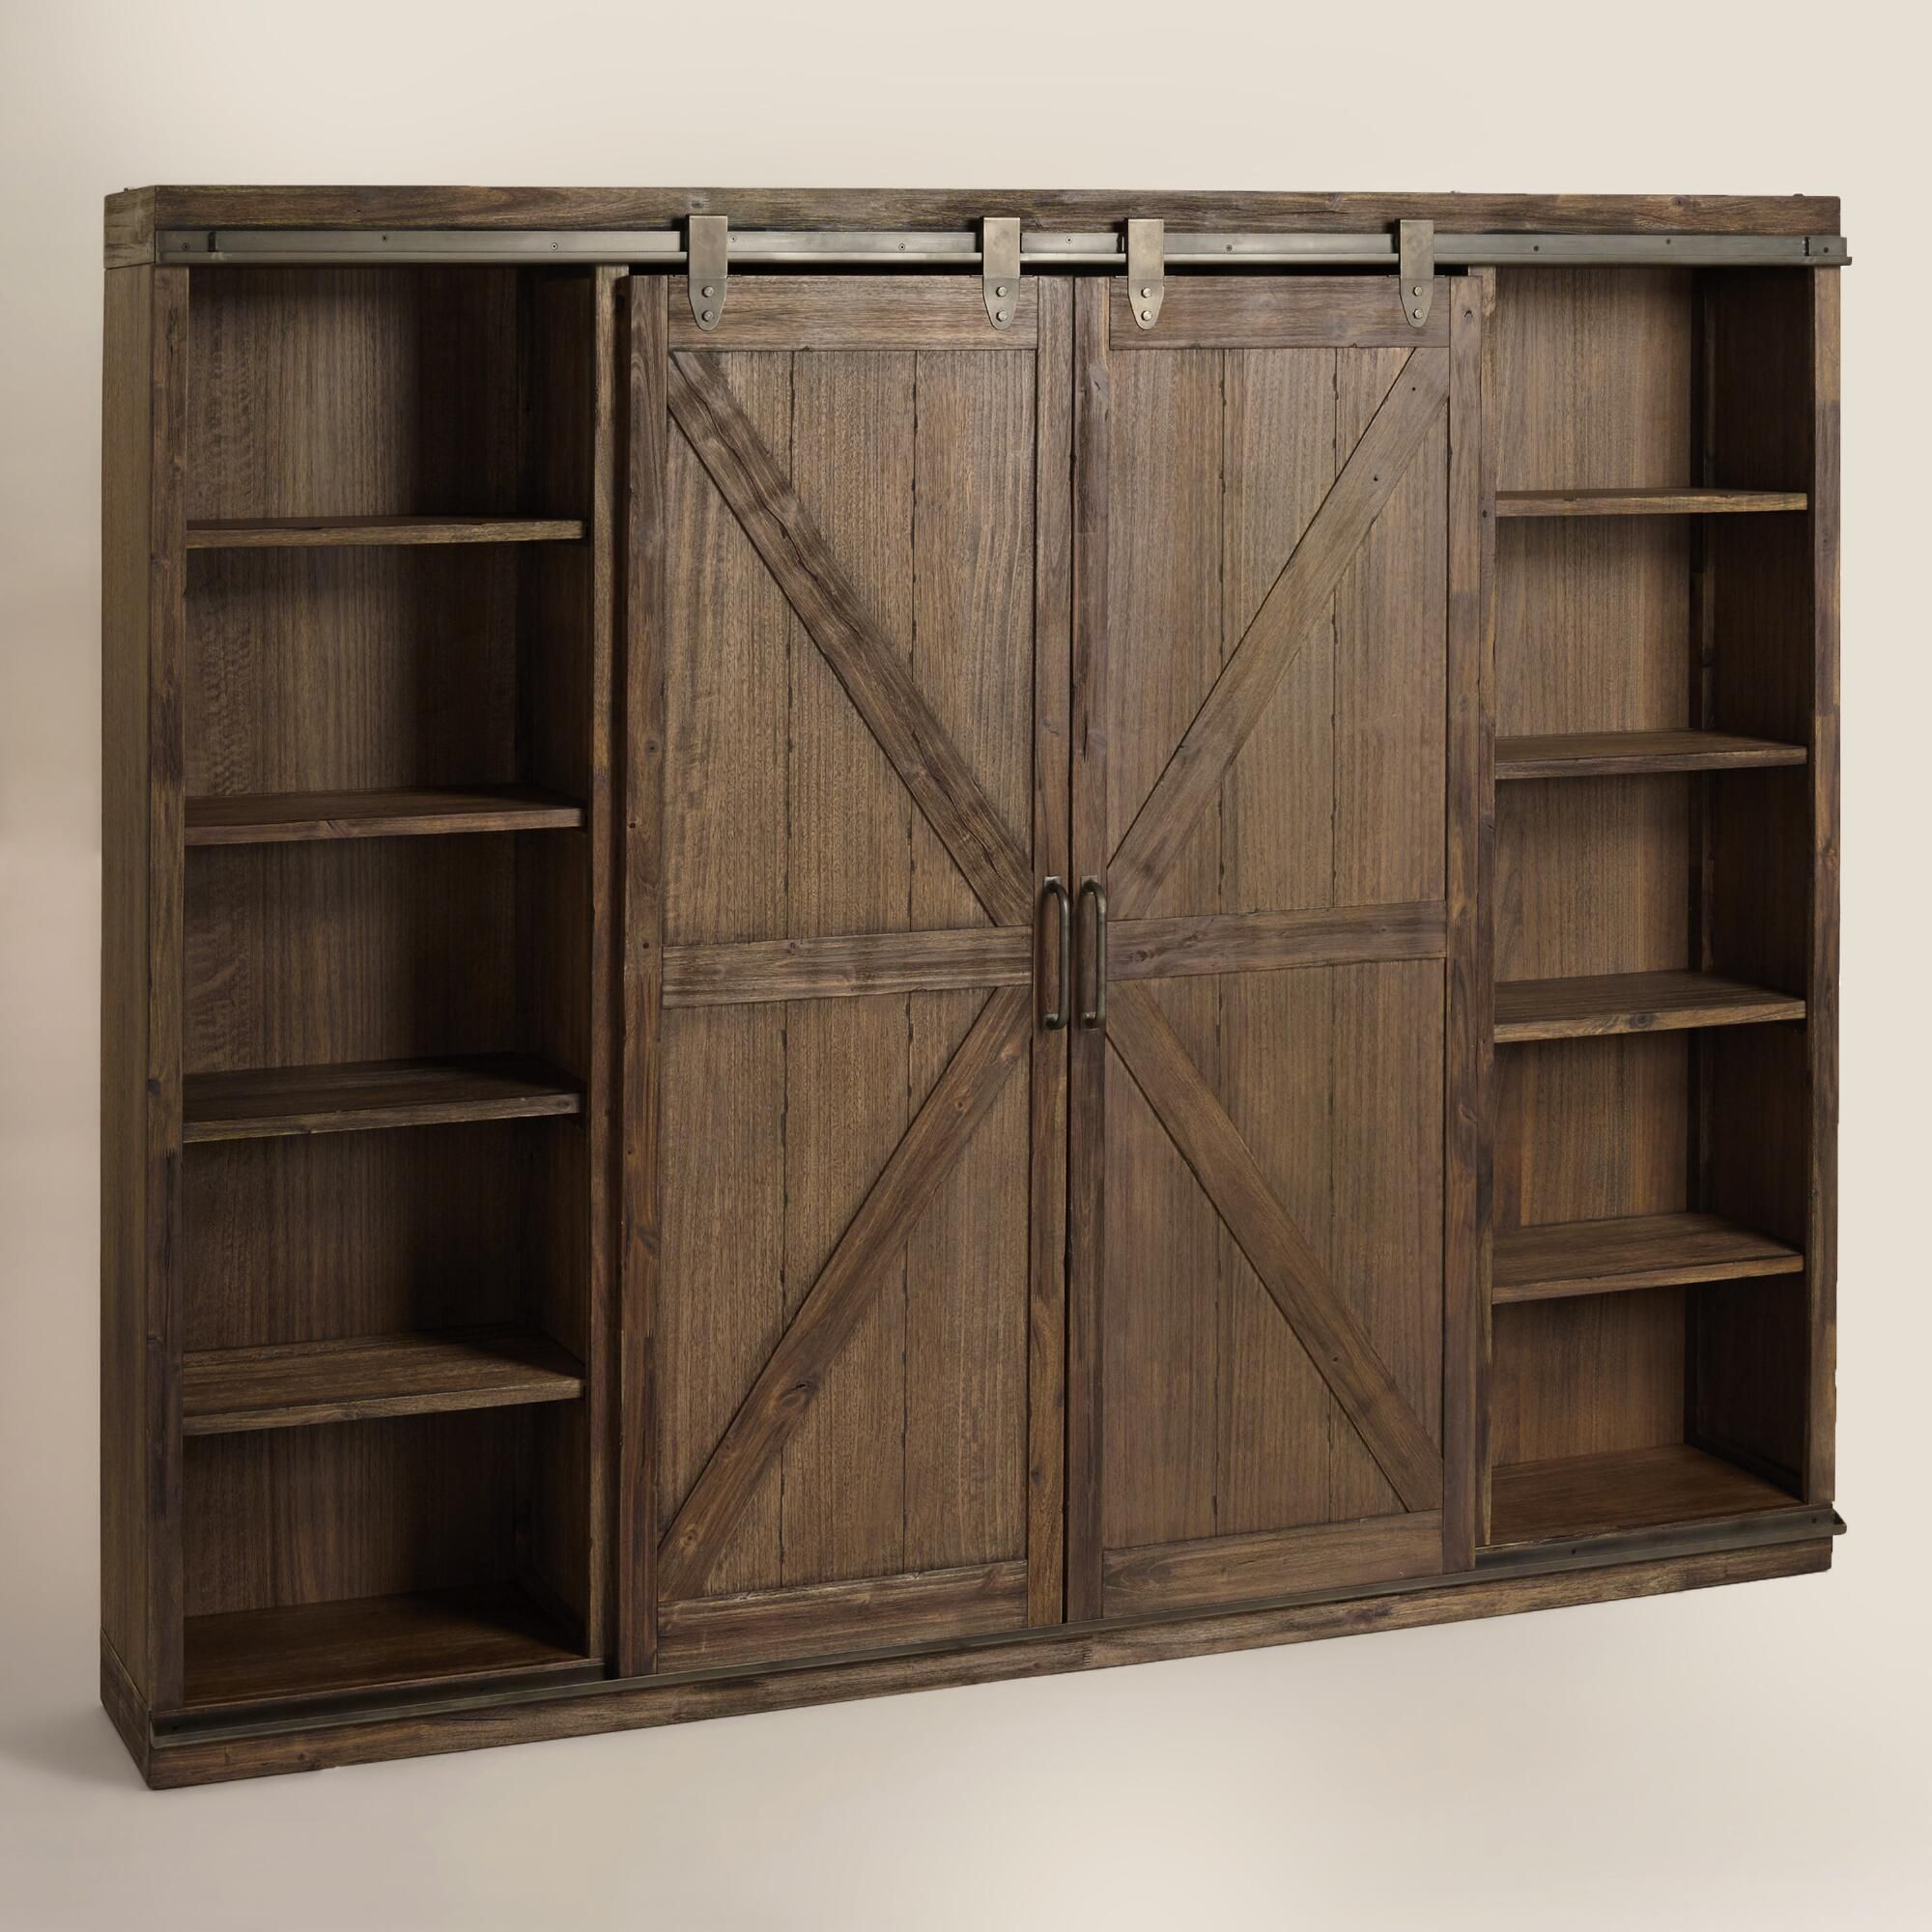 wood shop oak glass bath bookcases antique bookcase section doors cabinet stacking with sliding